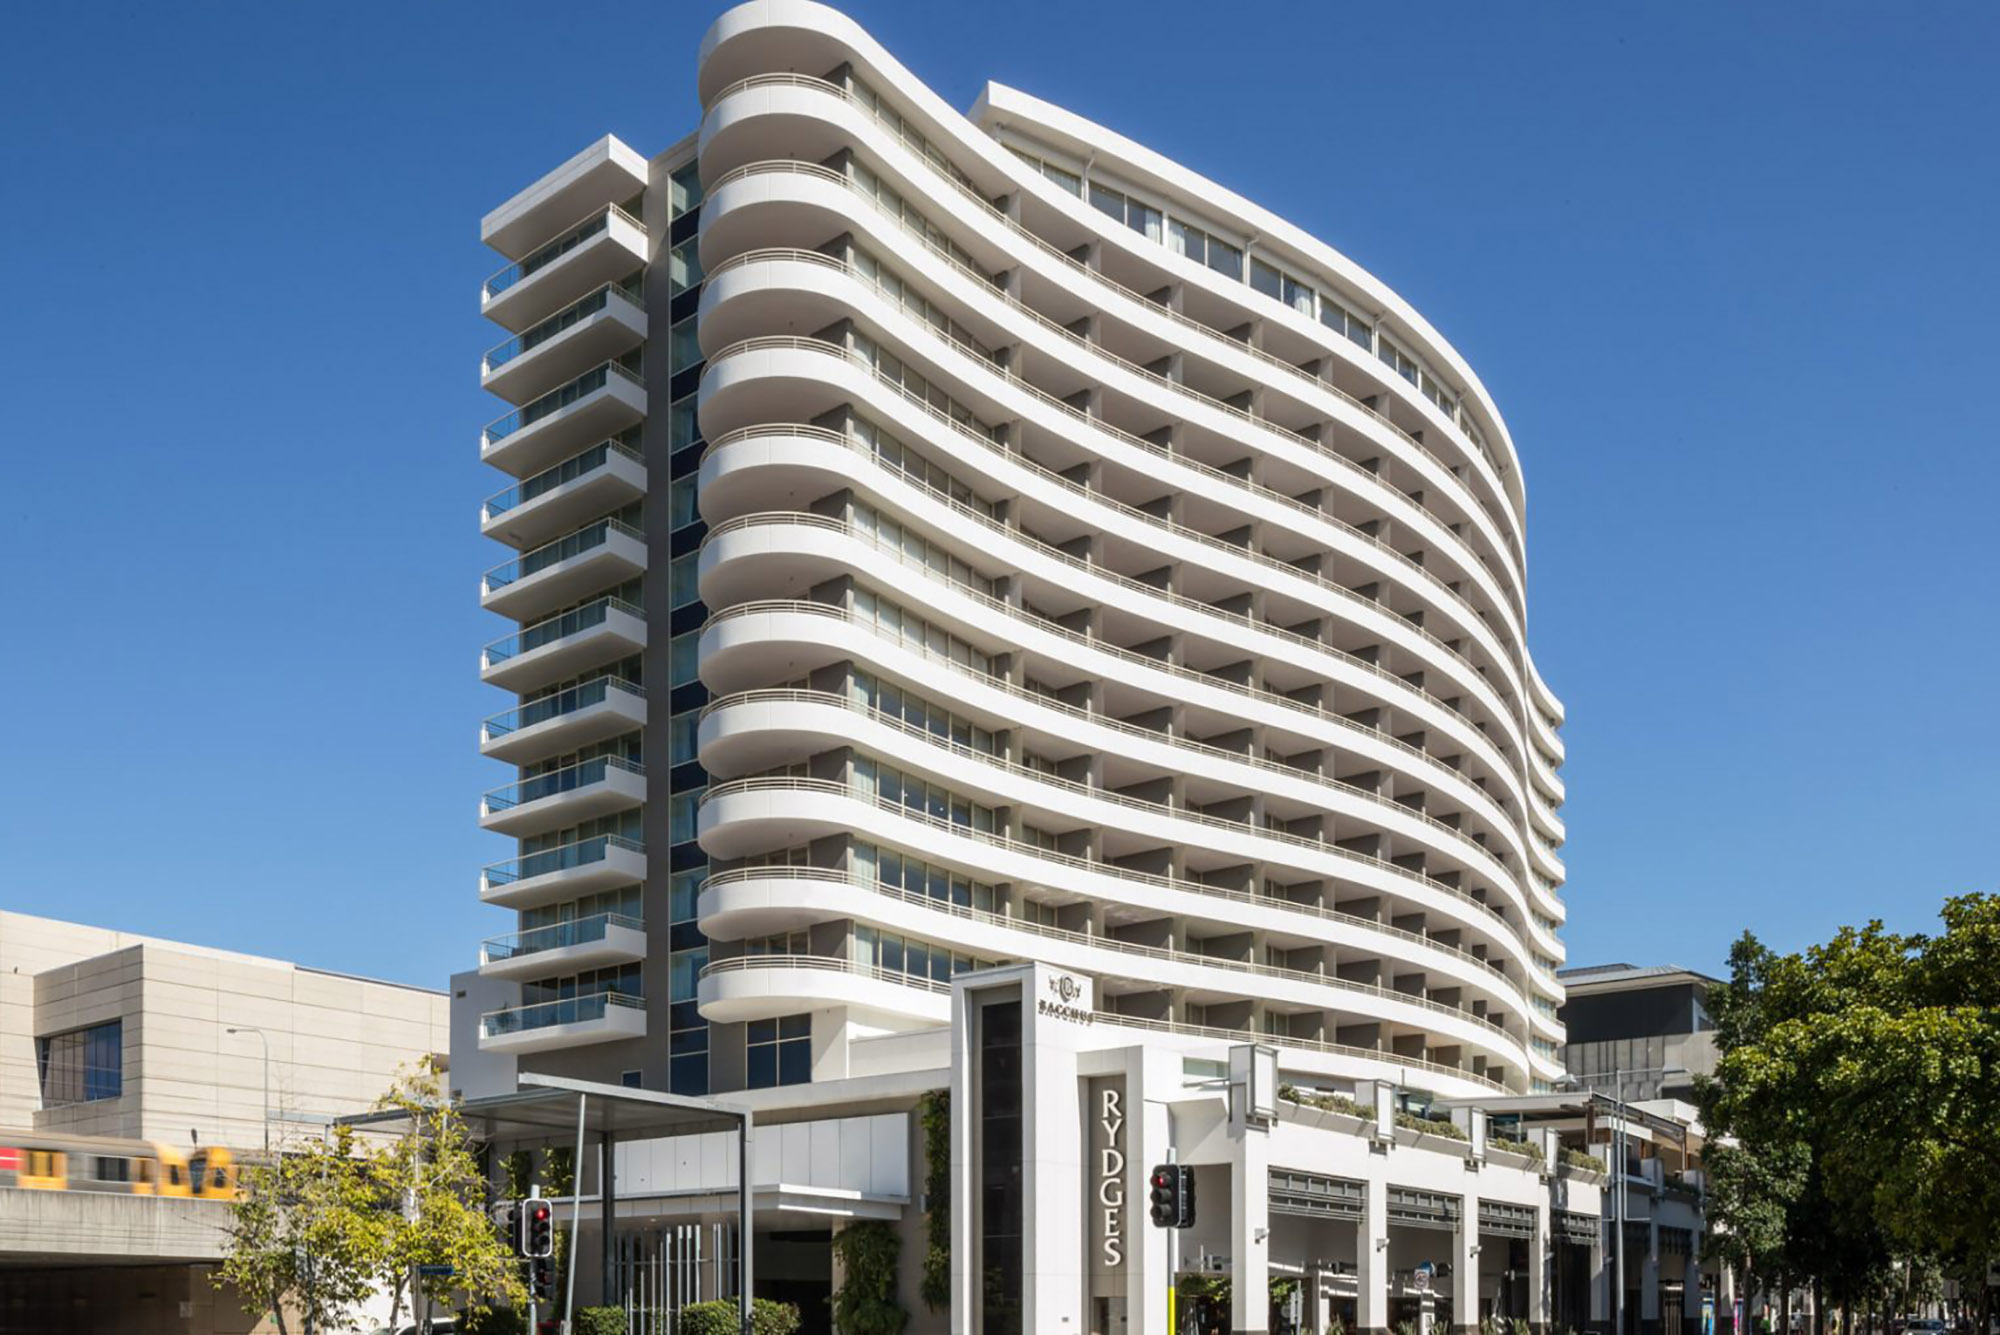 The 4-star Rydges South Bank Brisbane.